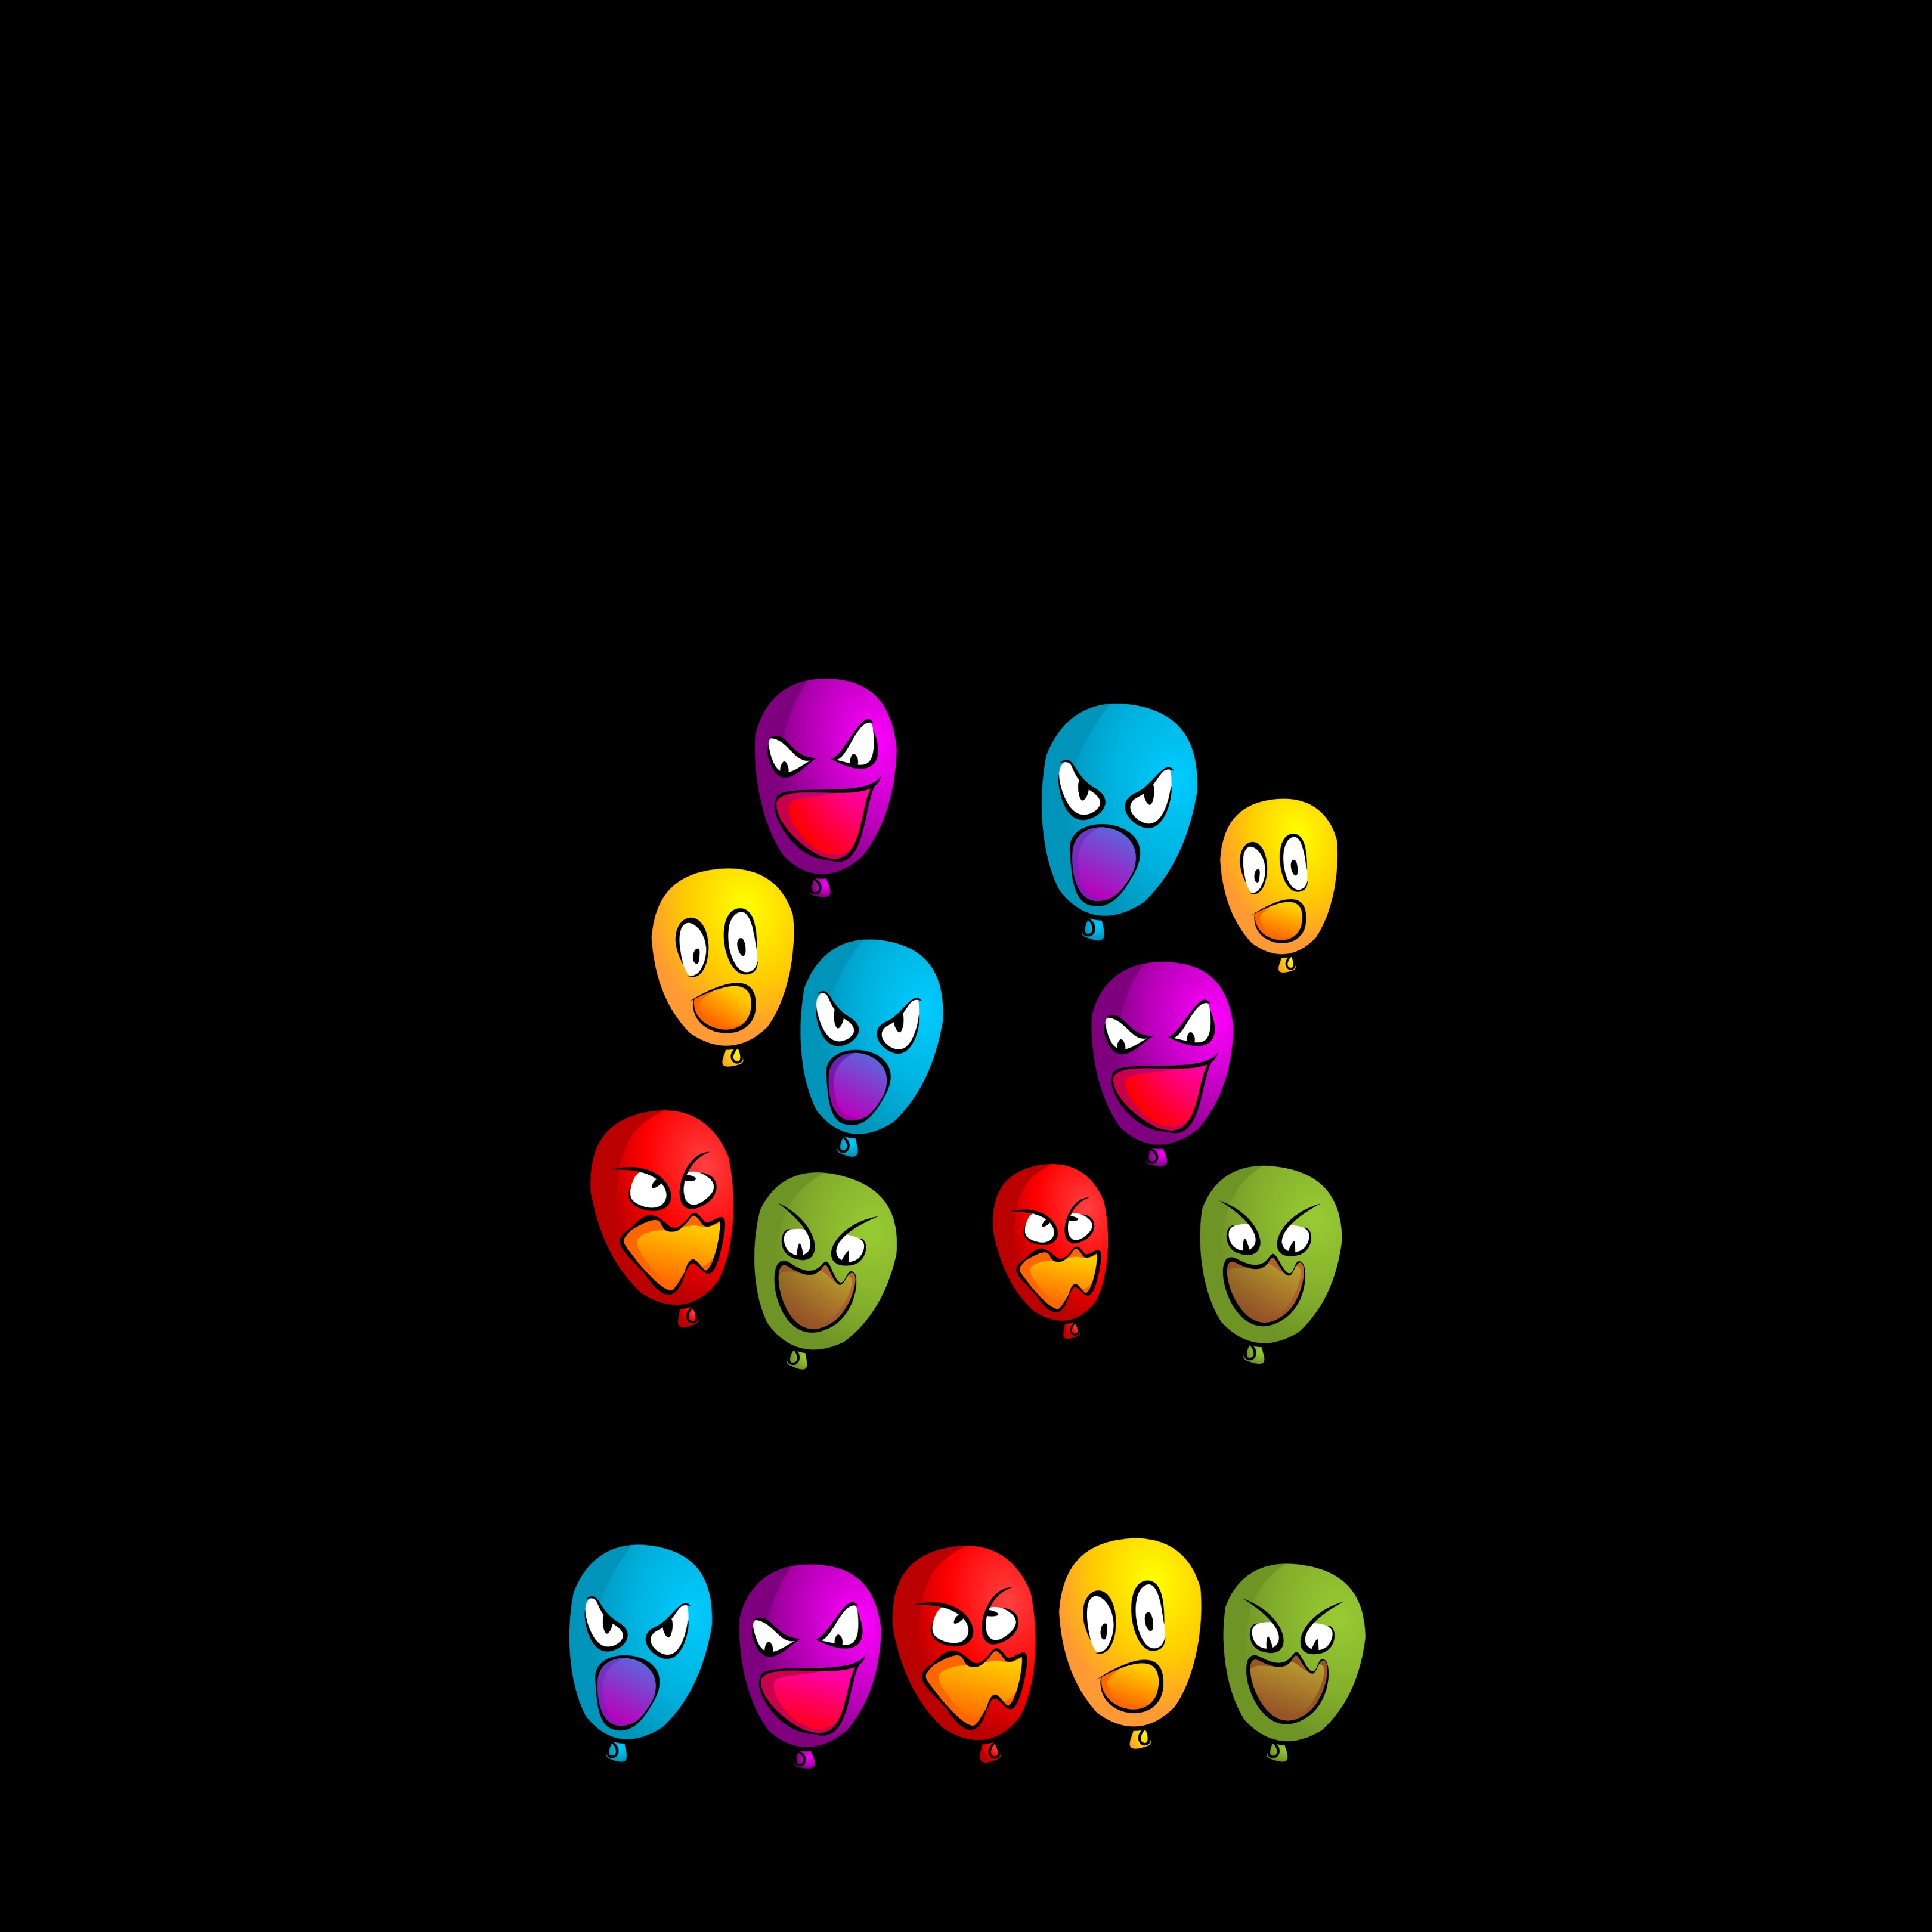 136038 Screensavers and Wallpapers Emotions for phone. Download Balloons, Vector, Multicolored, Emotions, Air Balloons, Smileys, Emoticons pictures for free